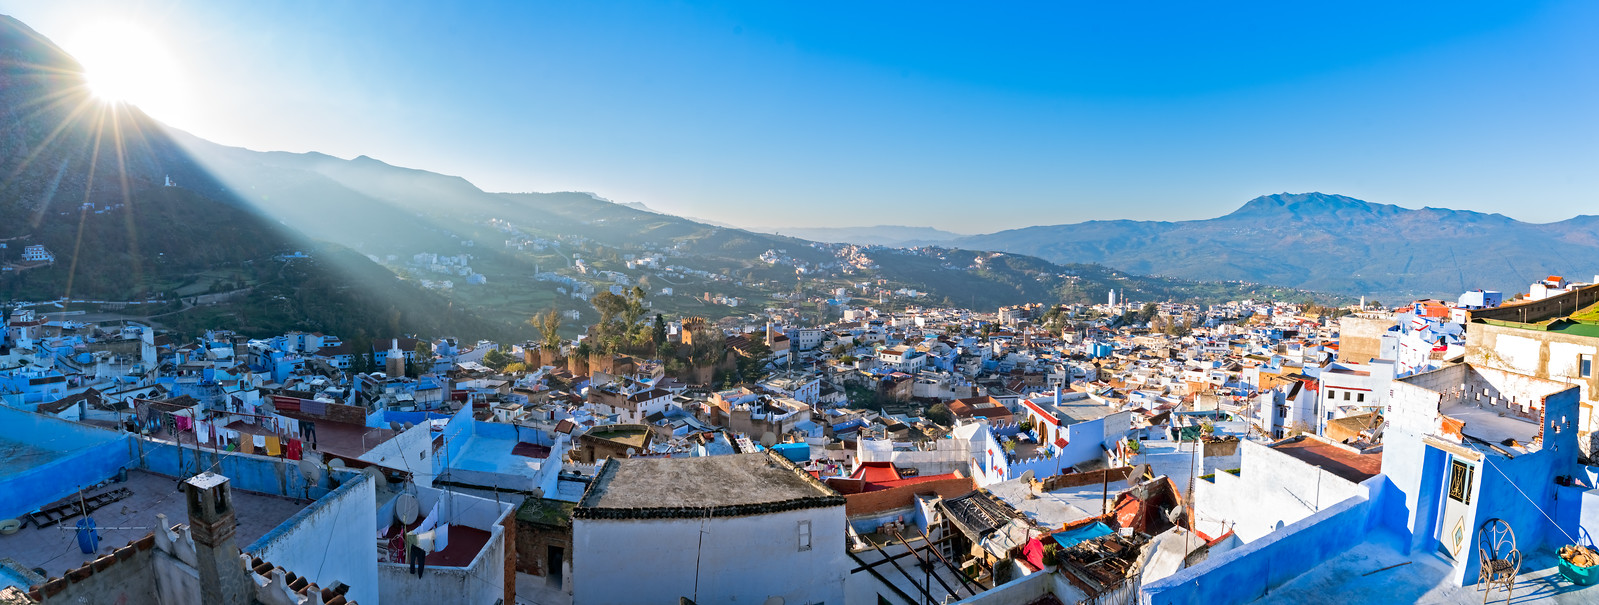 Sunrise over Chefchaouen Morocco - Photography workshop with Intentionally Lost and Kevin Wenning #intentionallylost